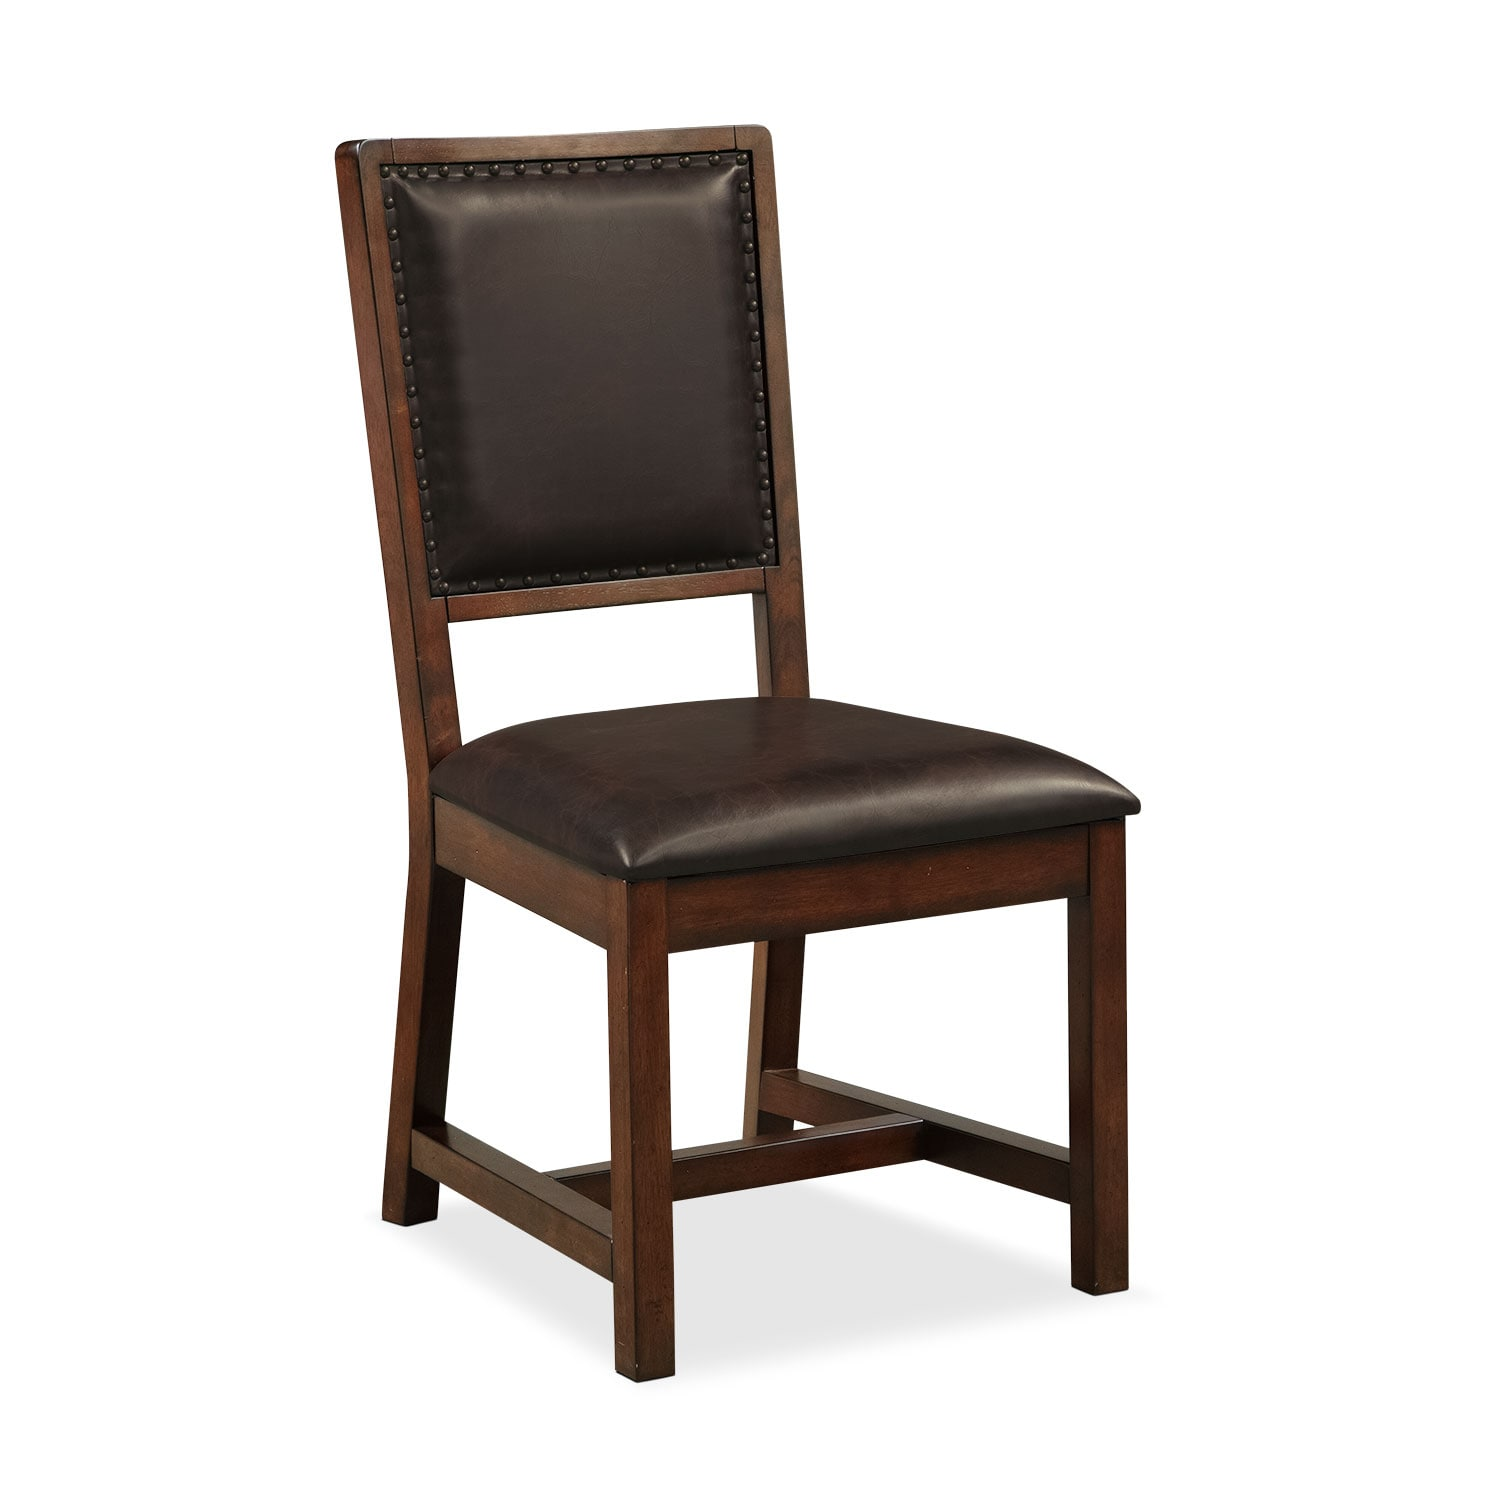 Dining Room Furniture - Newcastle Side Chair - Mahogany